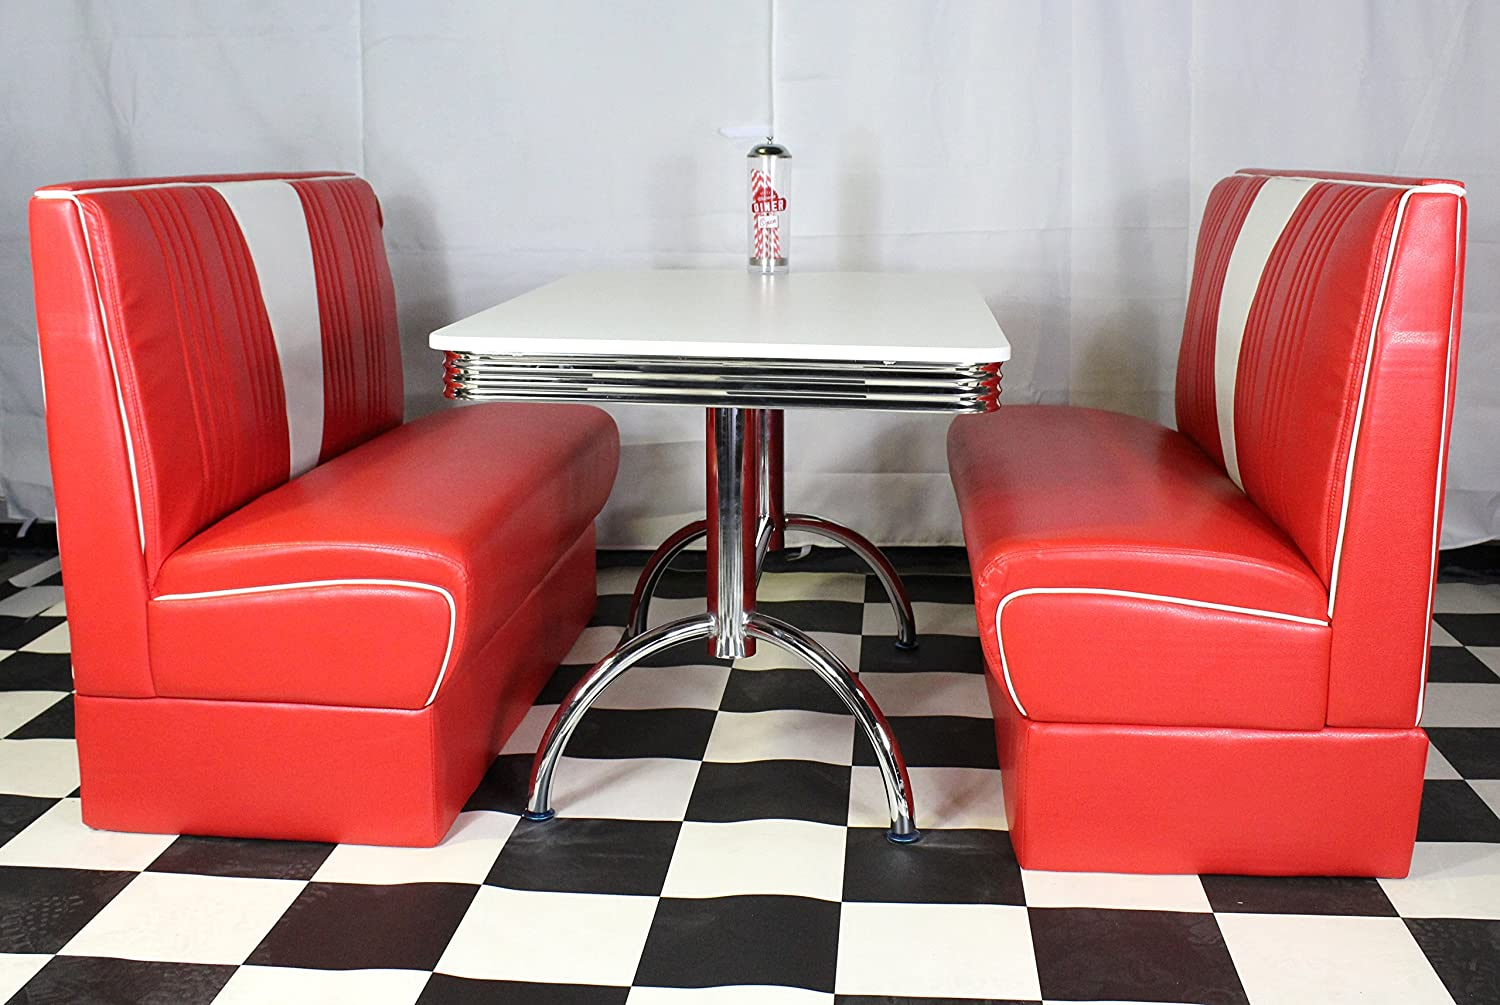 Just-Americanacom American Diner Furniture 50s Style Retro White Table And Red Nashville Booth Set